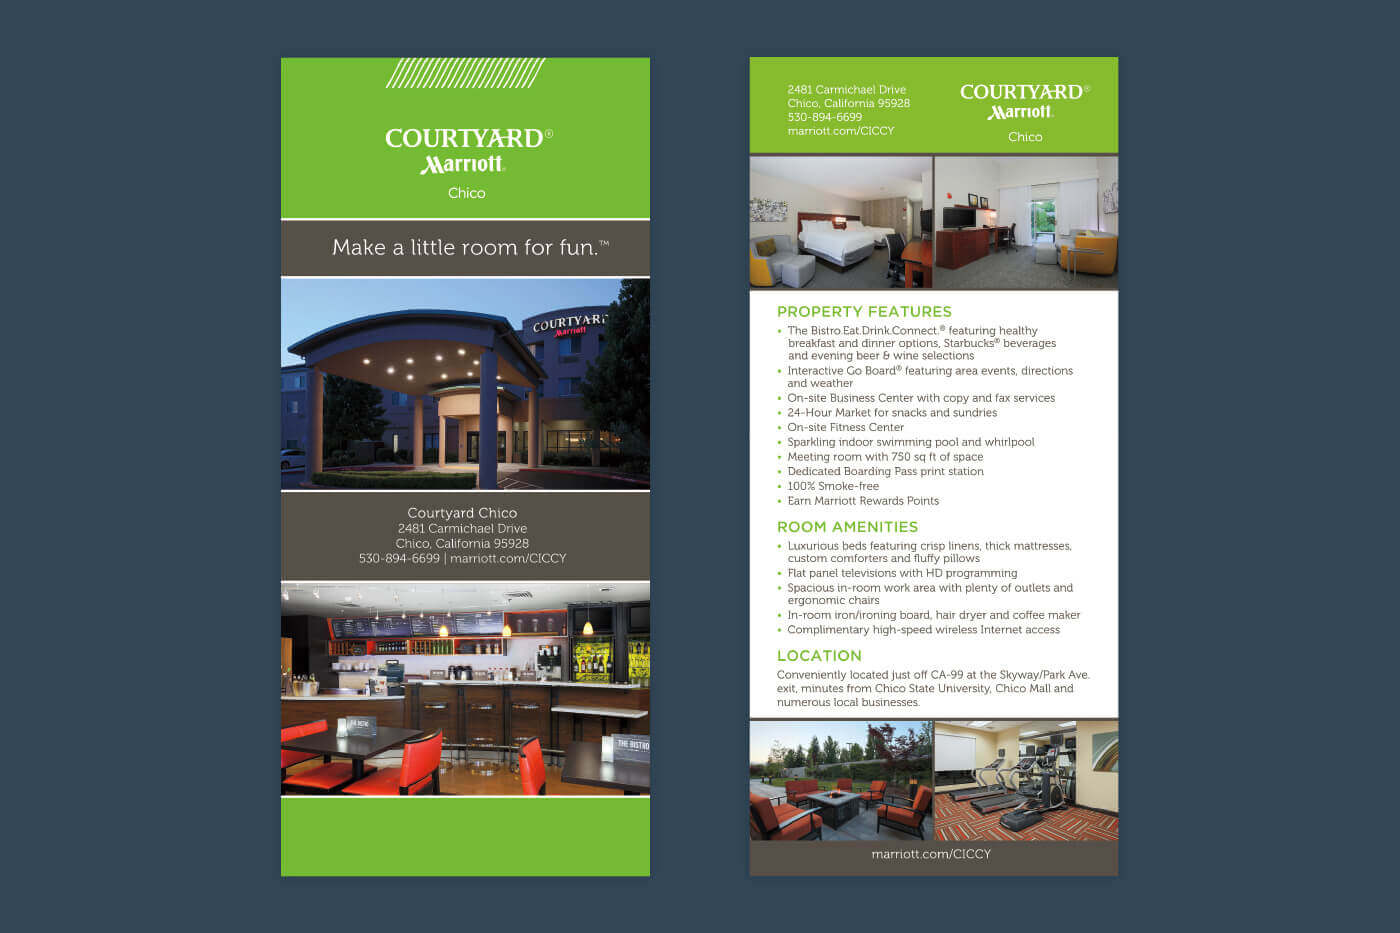 Marketing Collateral - Courtyard Chico Rackcard